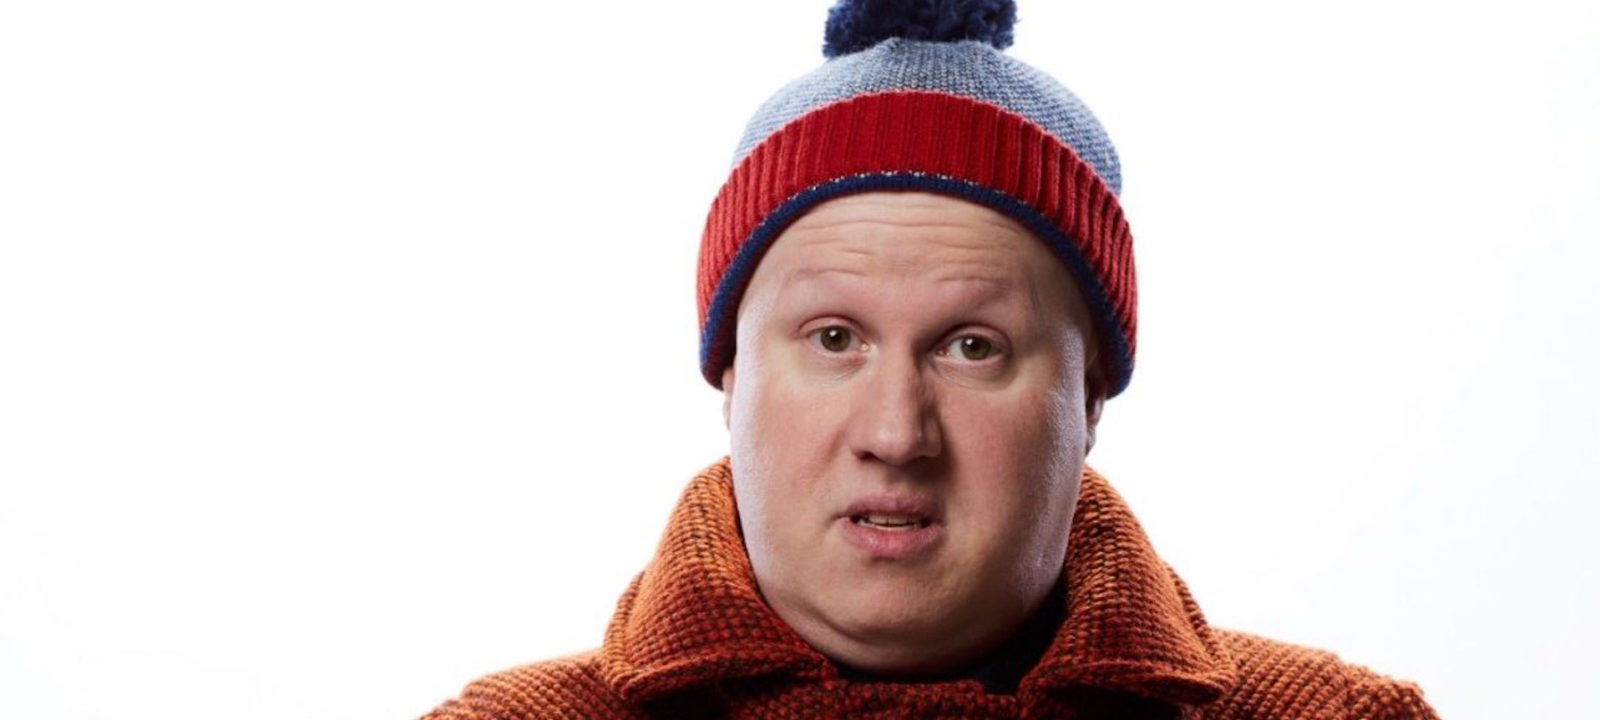 Matt Lucas as Nardole in 'Doctor Who'